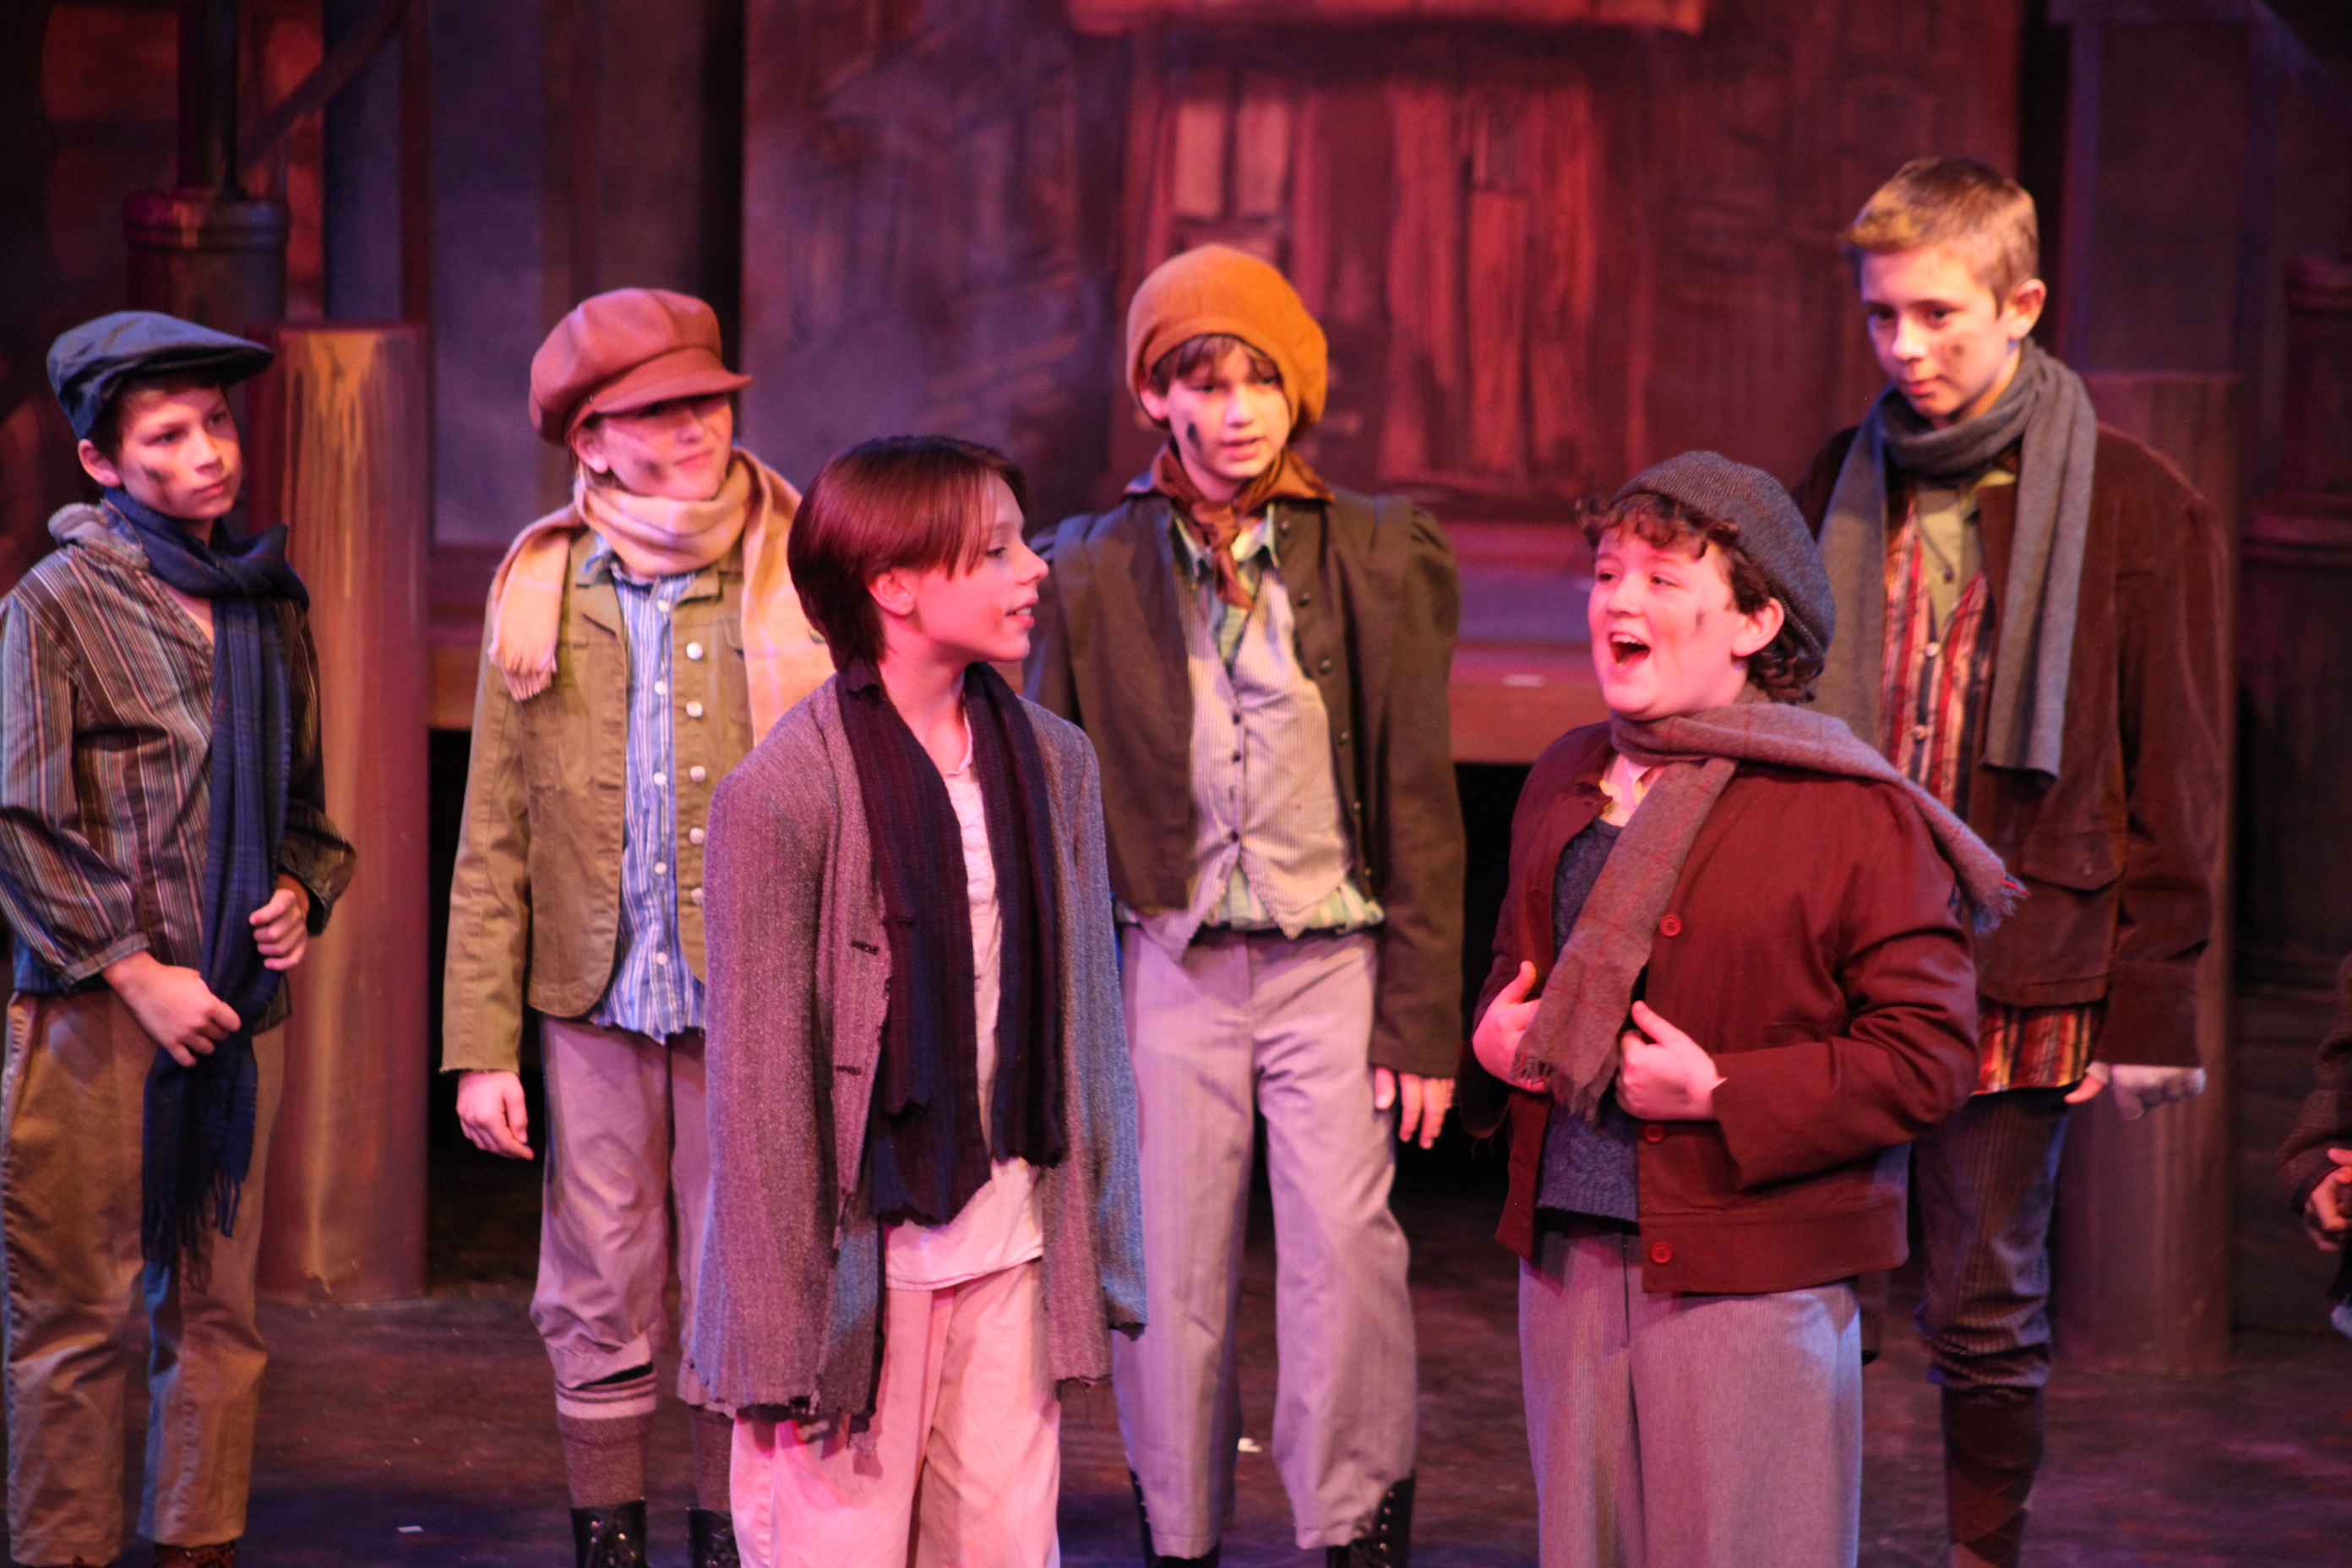 Evan Gray, in front on the right, sings during Oliver! at Limelight Theatre in June 2014. Evan will play Pugsley in The Addams Family at Limelight Theatre (Sept. 18-Oct. 19), then will leave for a national tour of A Christmas Story The Musical.